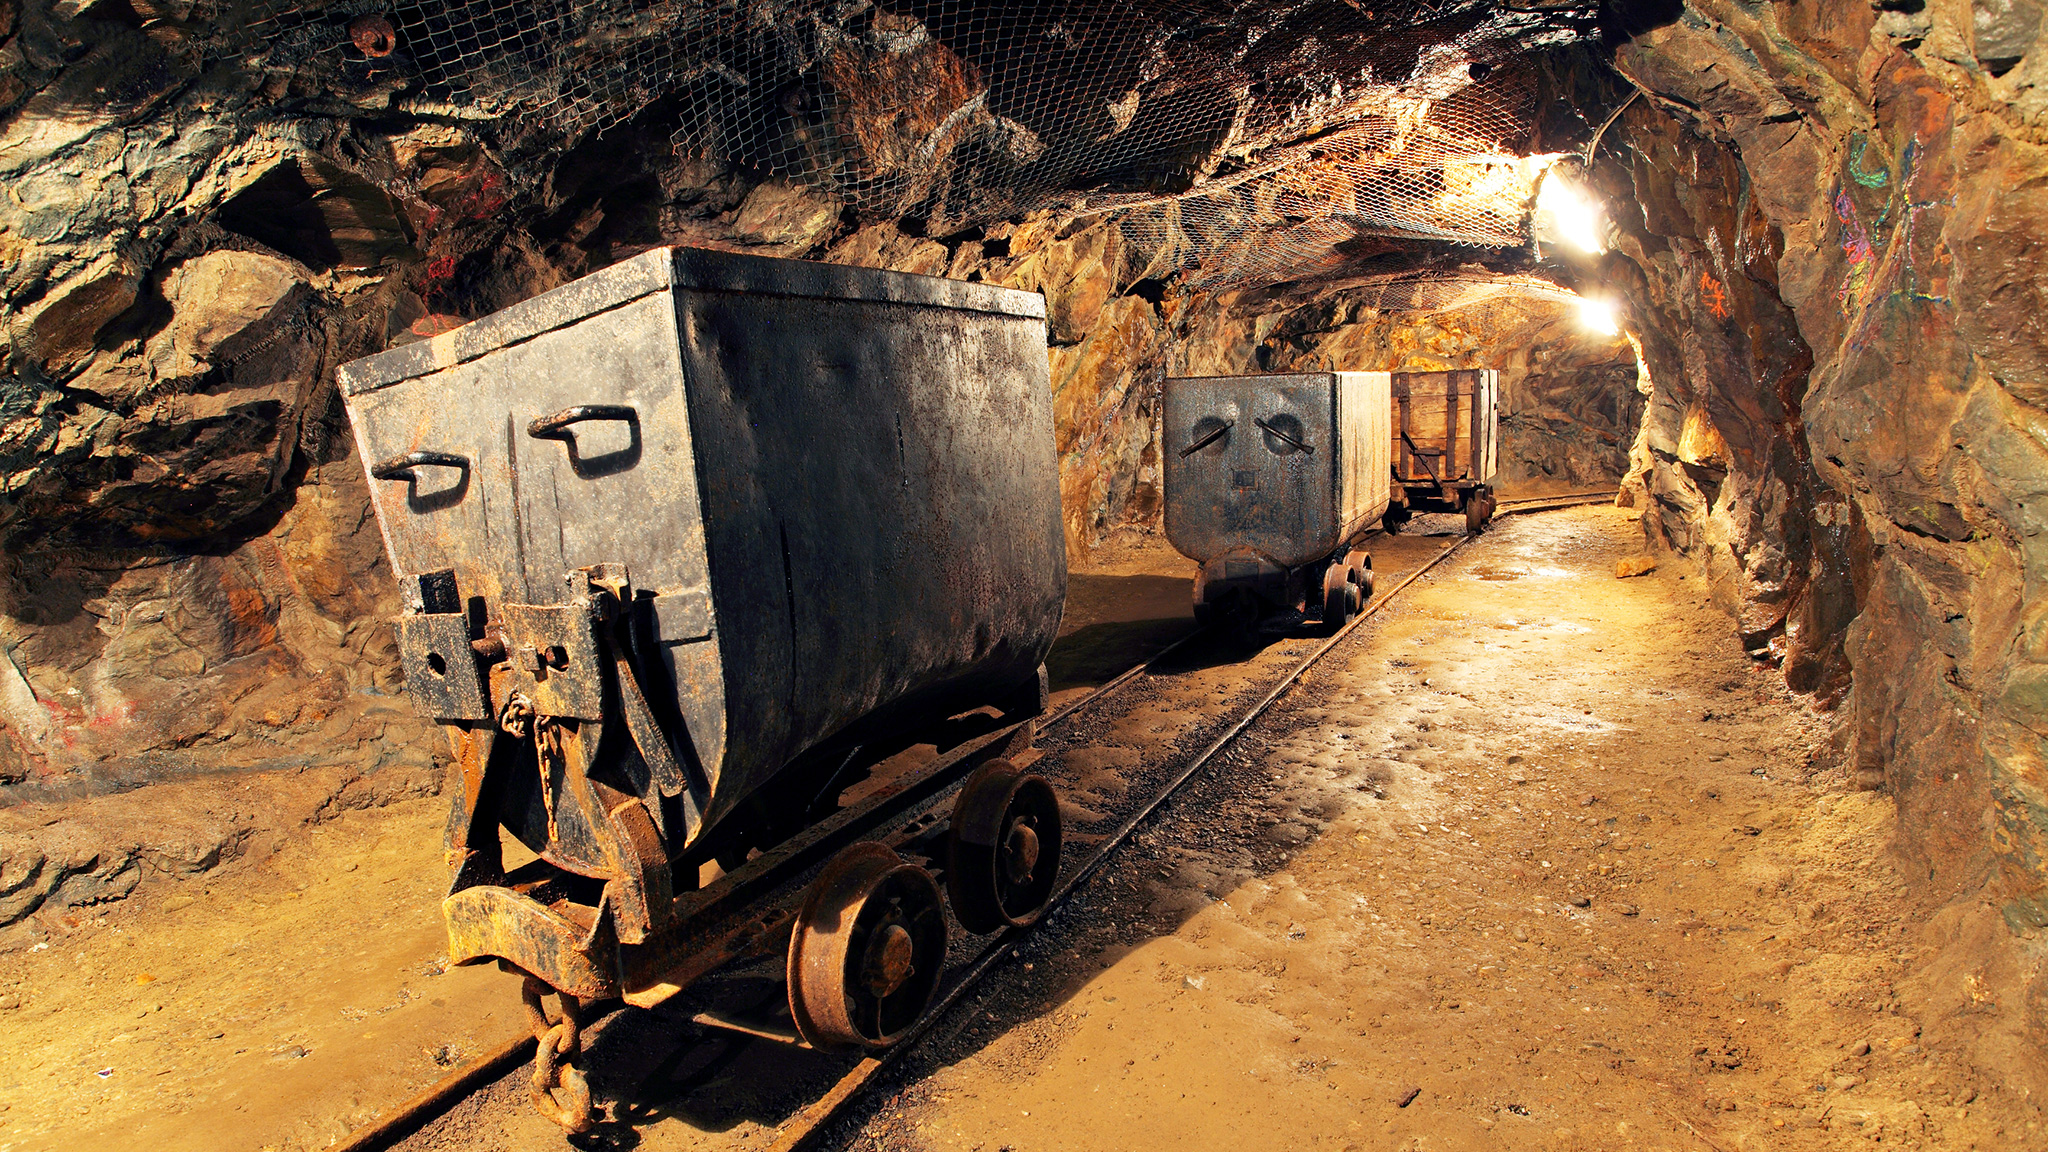 China wants to buy more copper mines to secure its supply | Financial Times